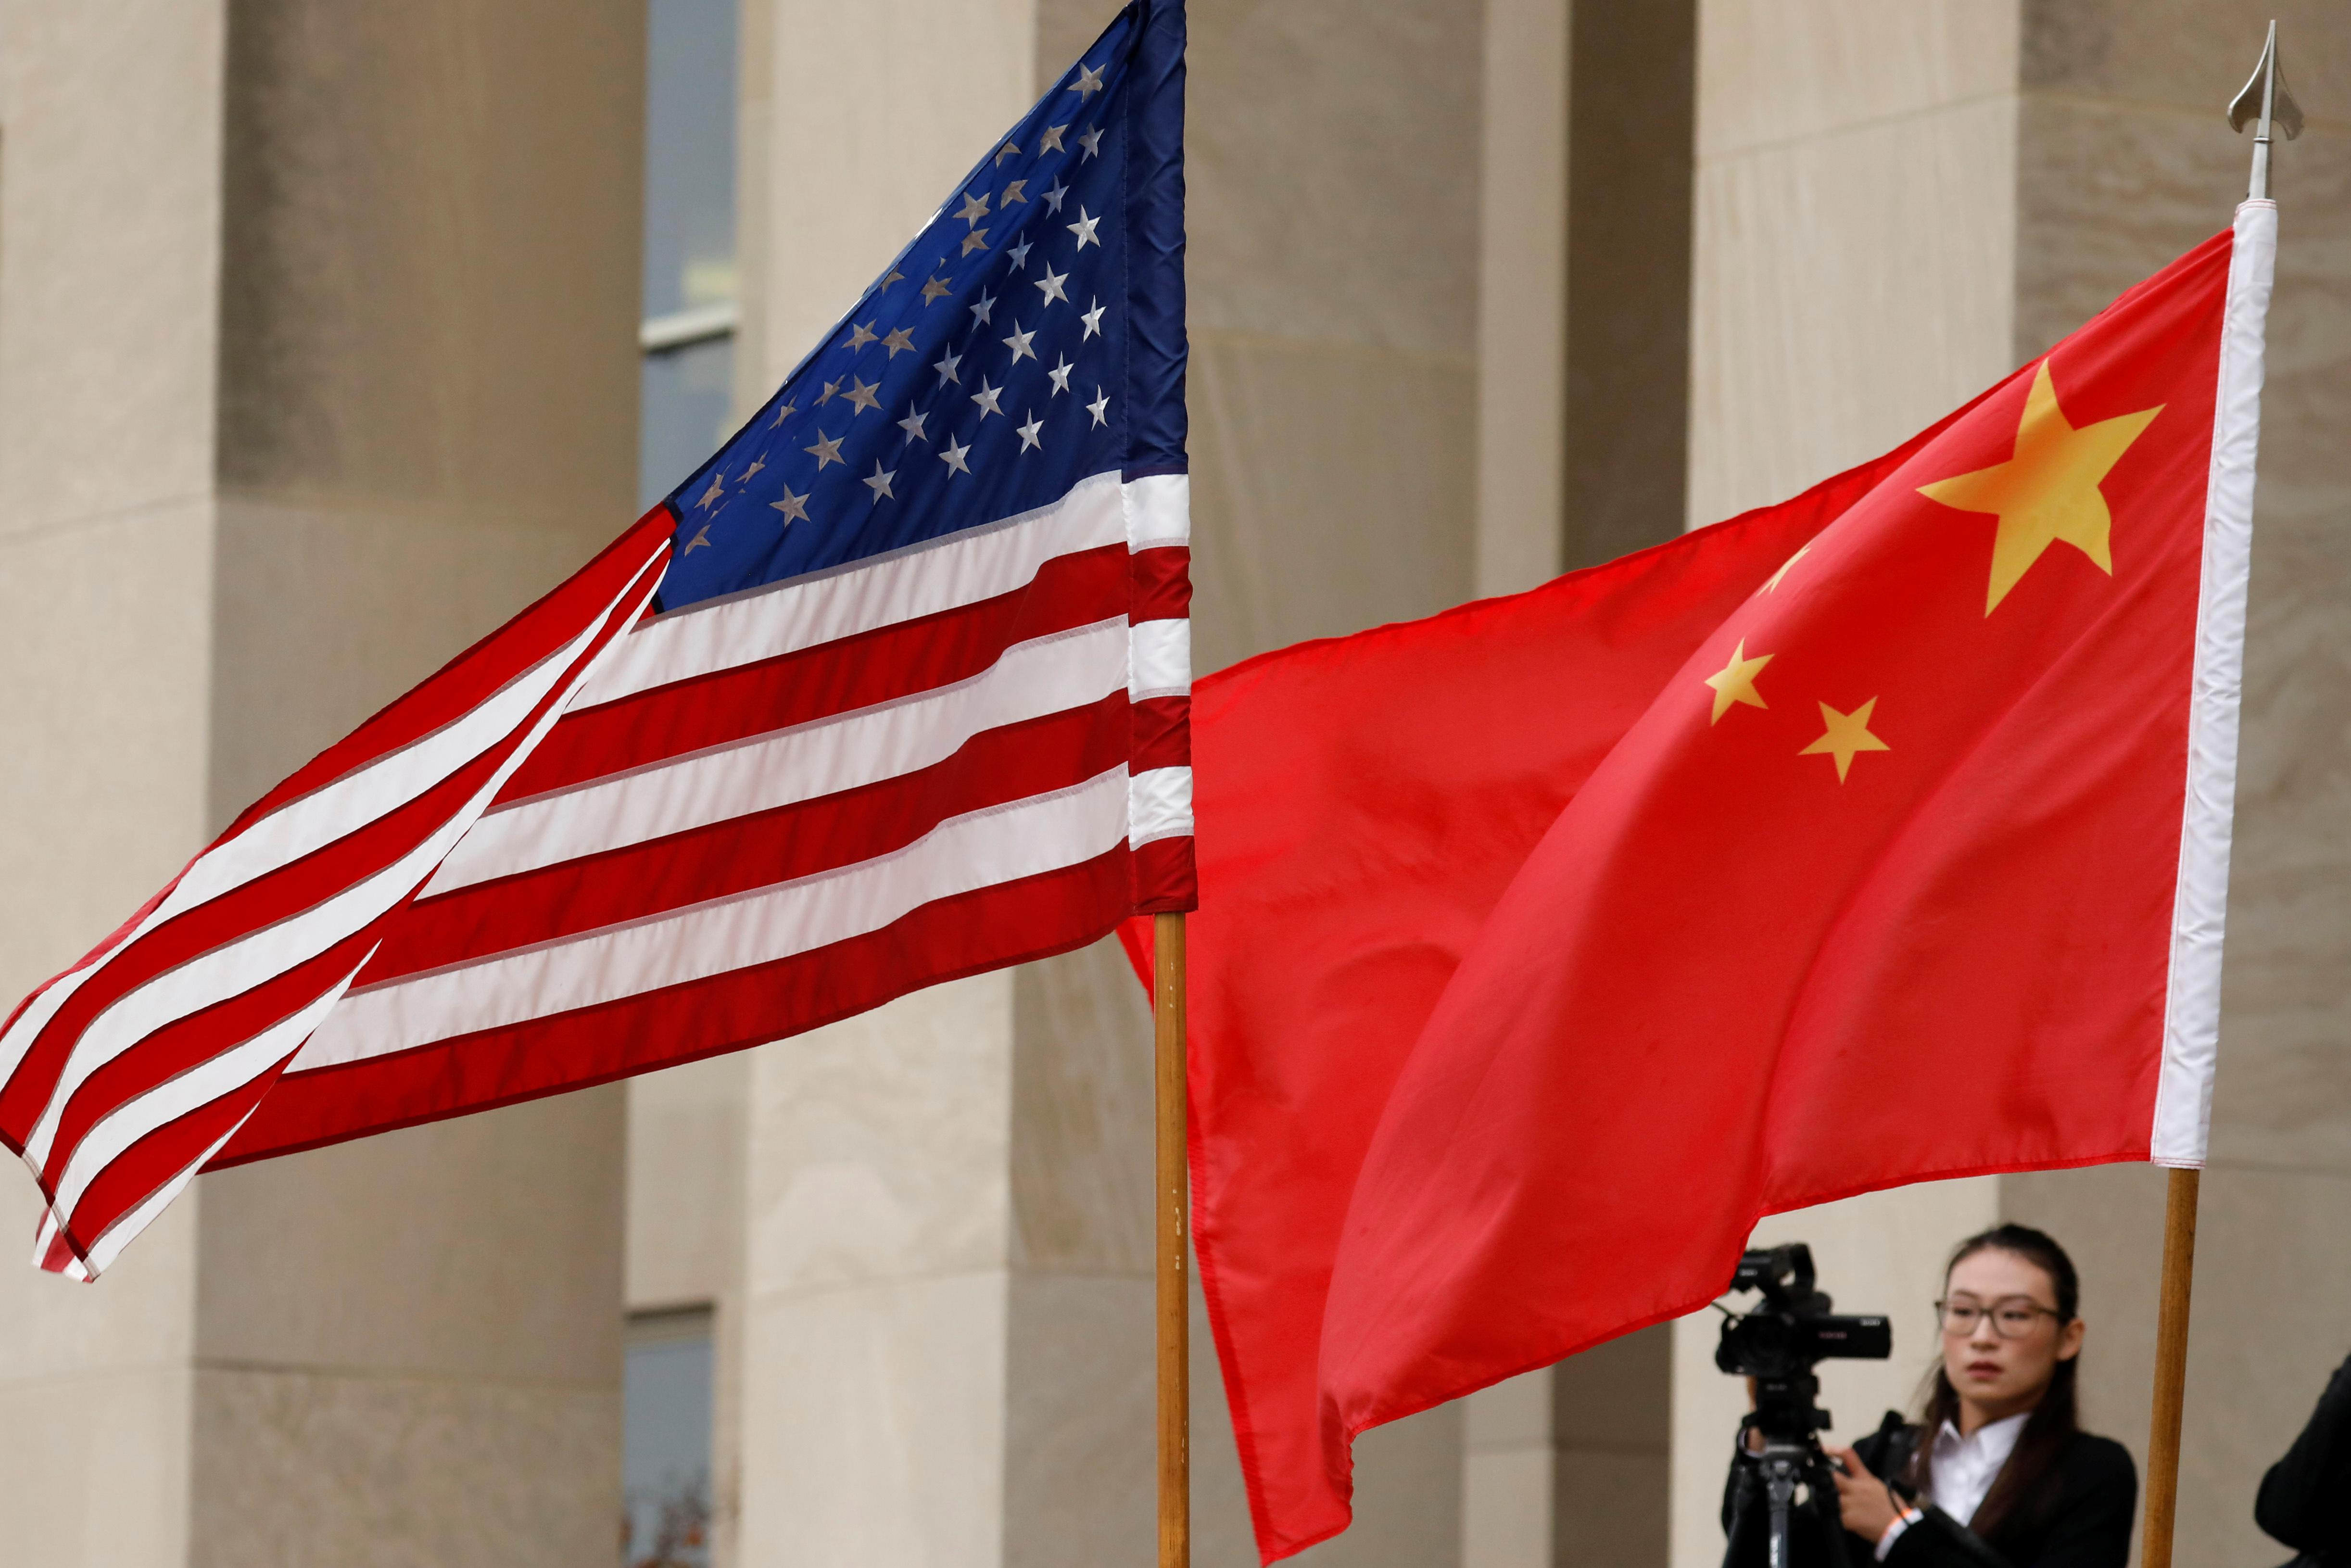 China plans to restrict visas for U.S. visitors with 'anti-China'...